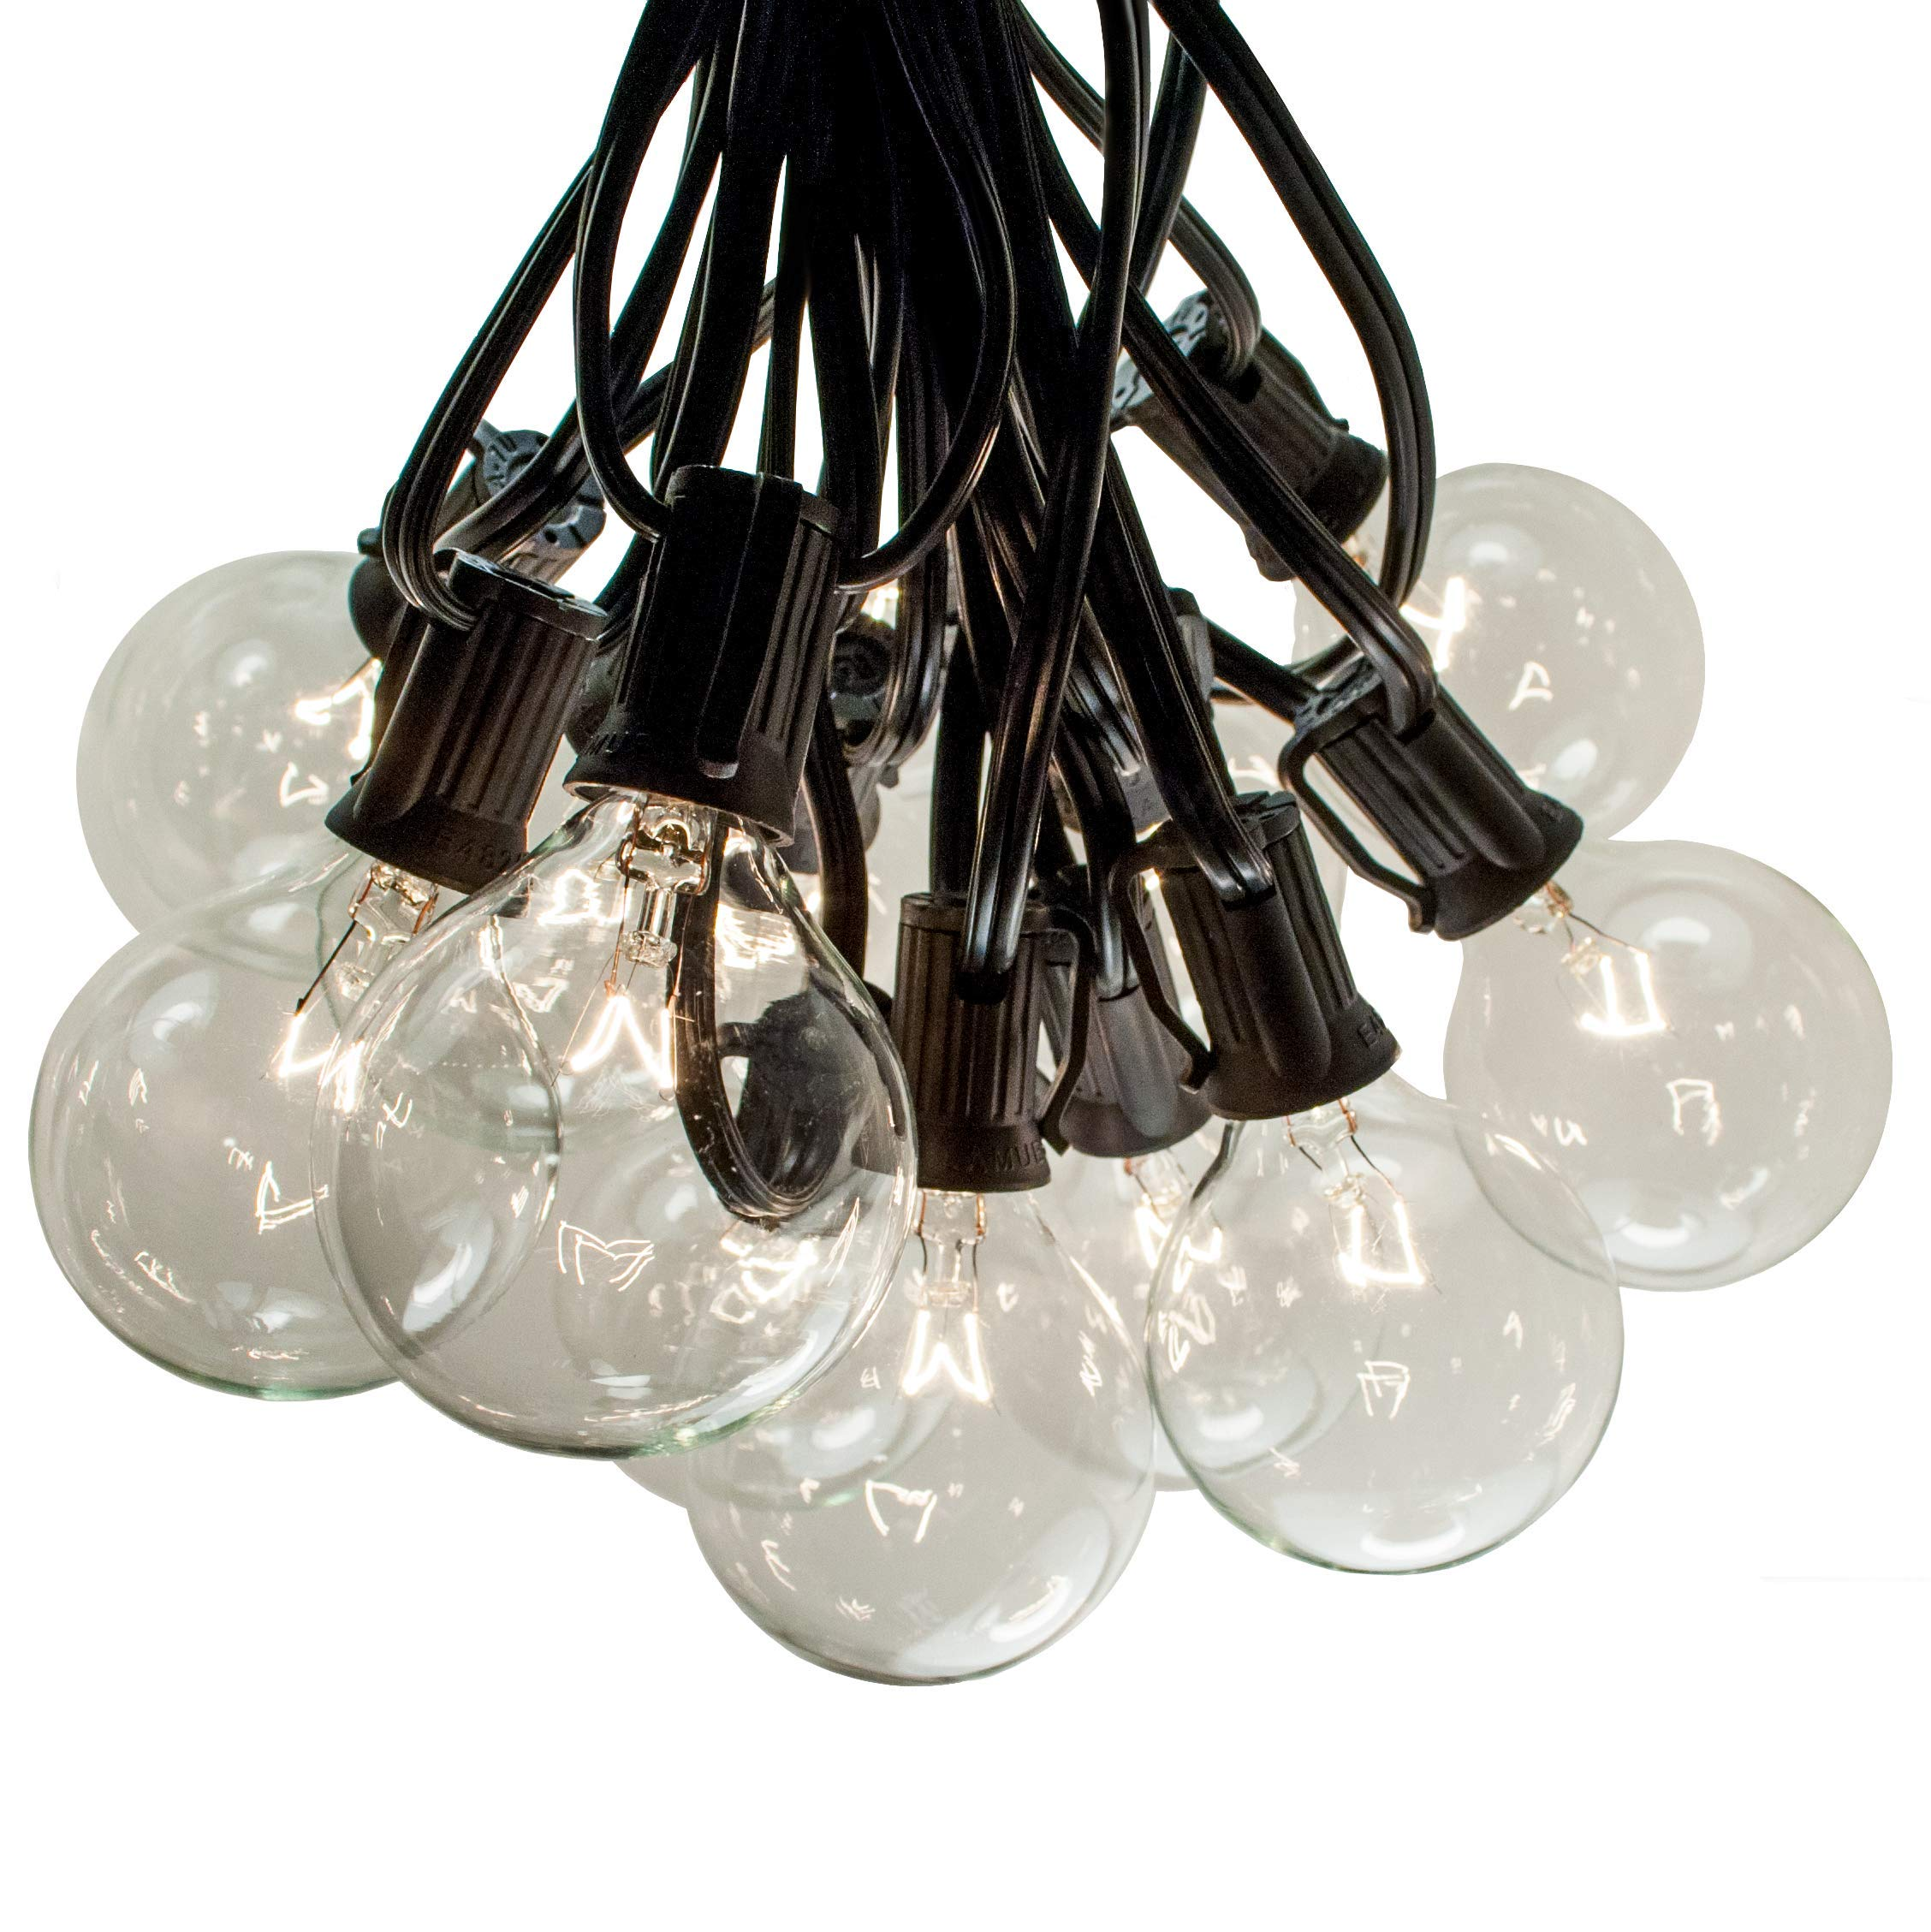 50 Foot G50 Patio Globe String Lights with 2 Inch Clear Bulbs for Outdoor String Lighting (Black Wire)